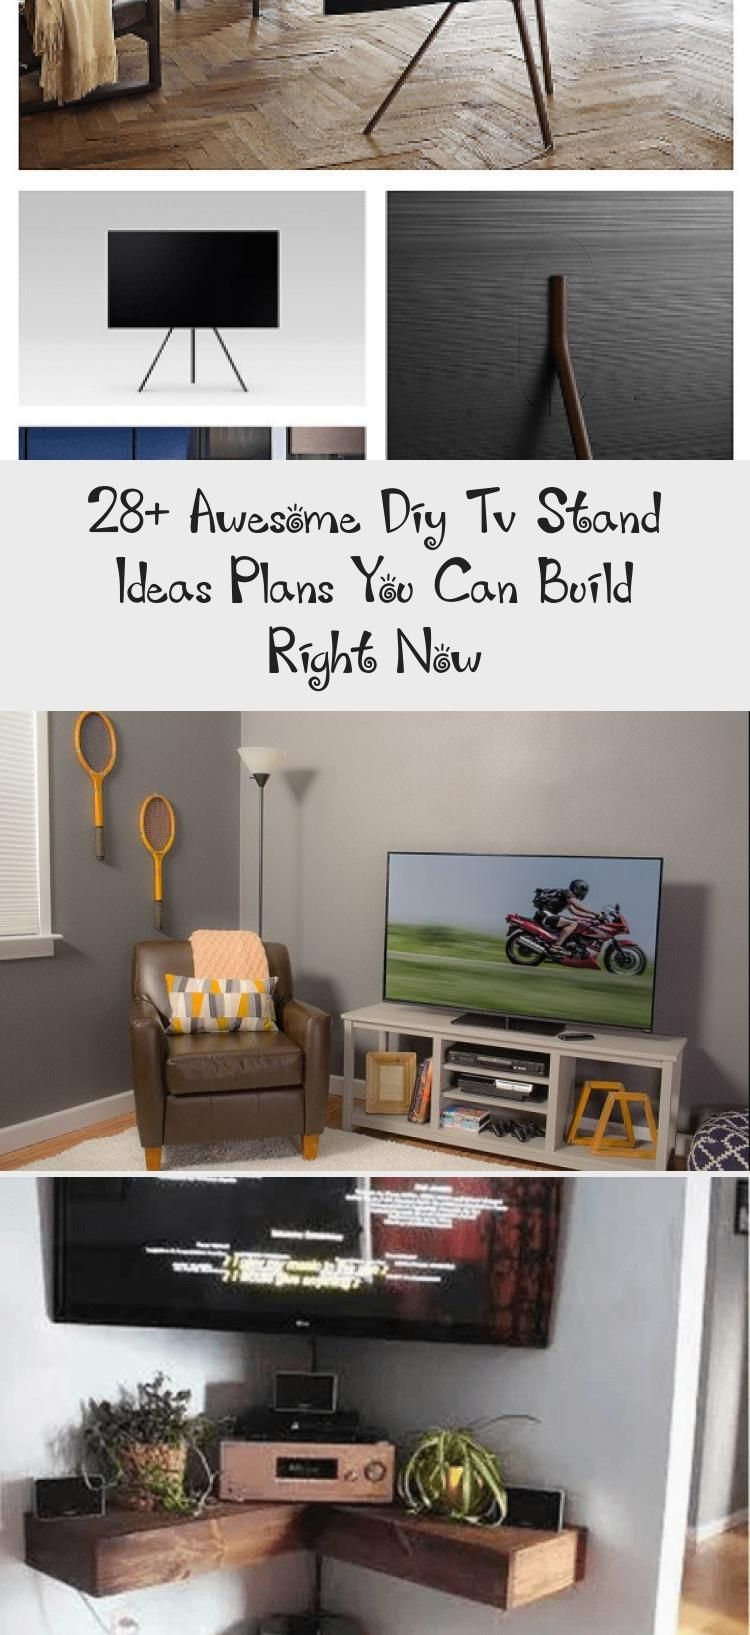 28 awesome diy tv stand ideas plans you can build right